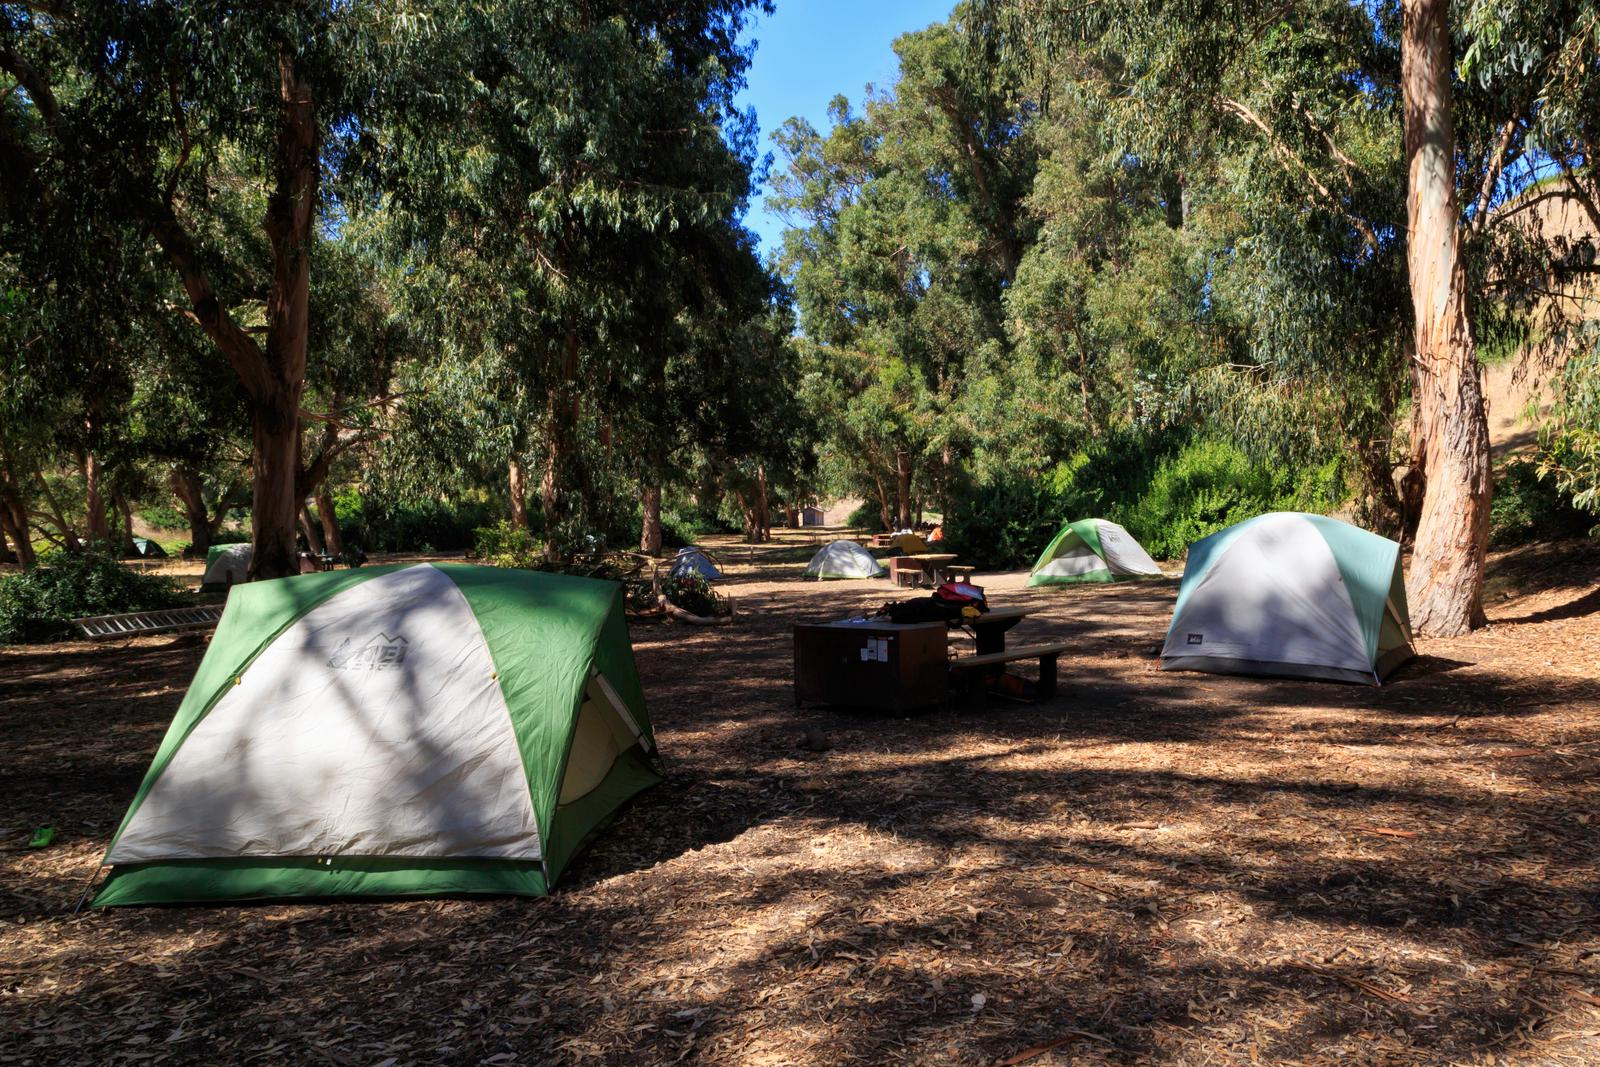 Tents in forested area.Scorpion Canyon Campground, Santa Cruz Island